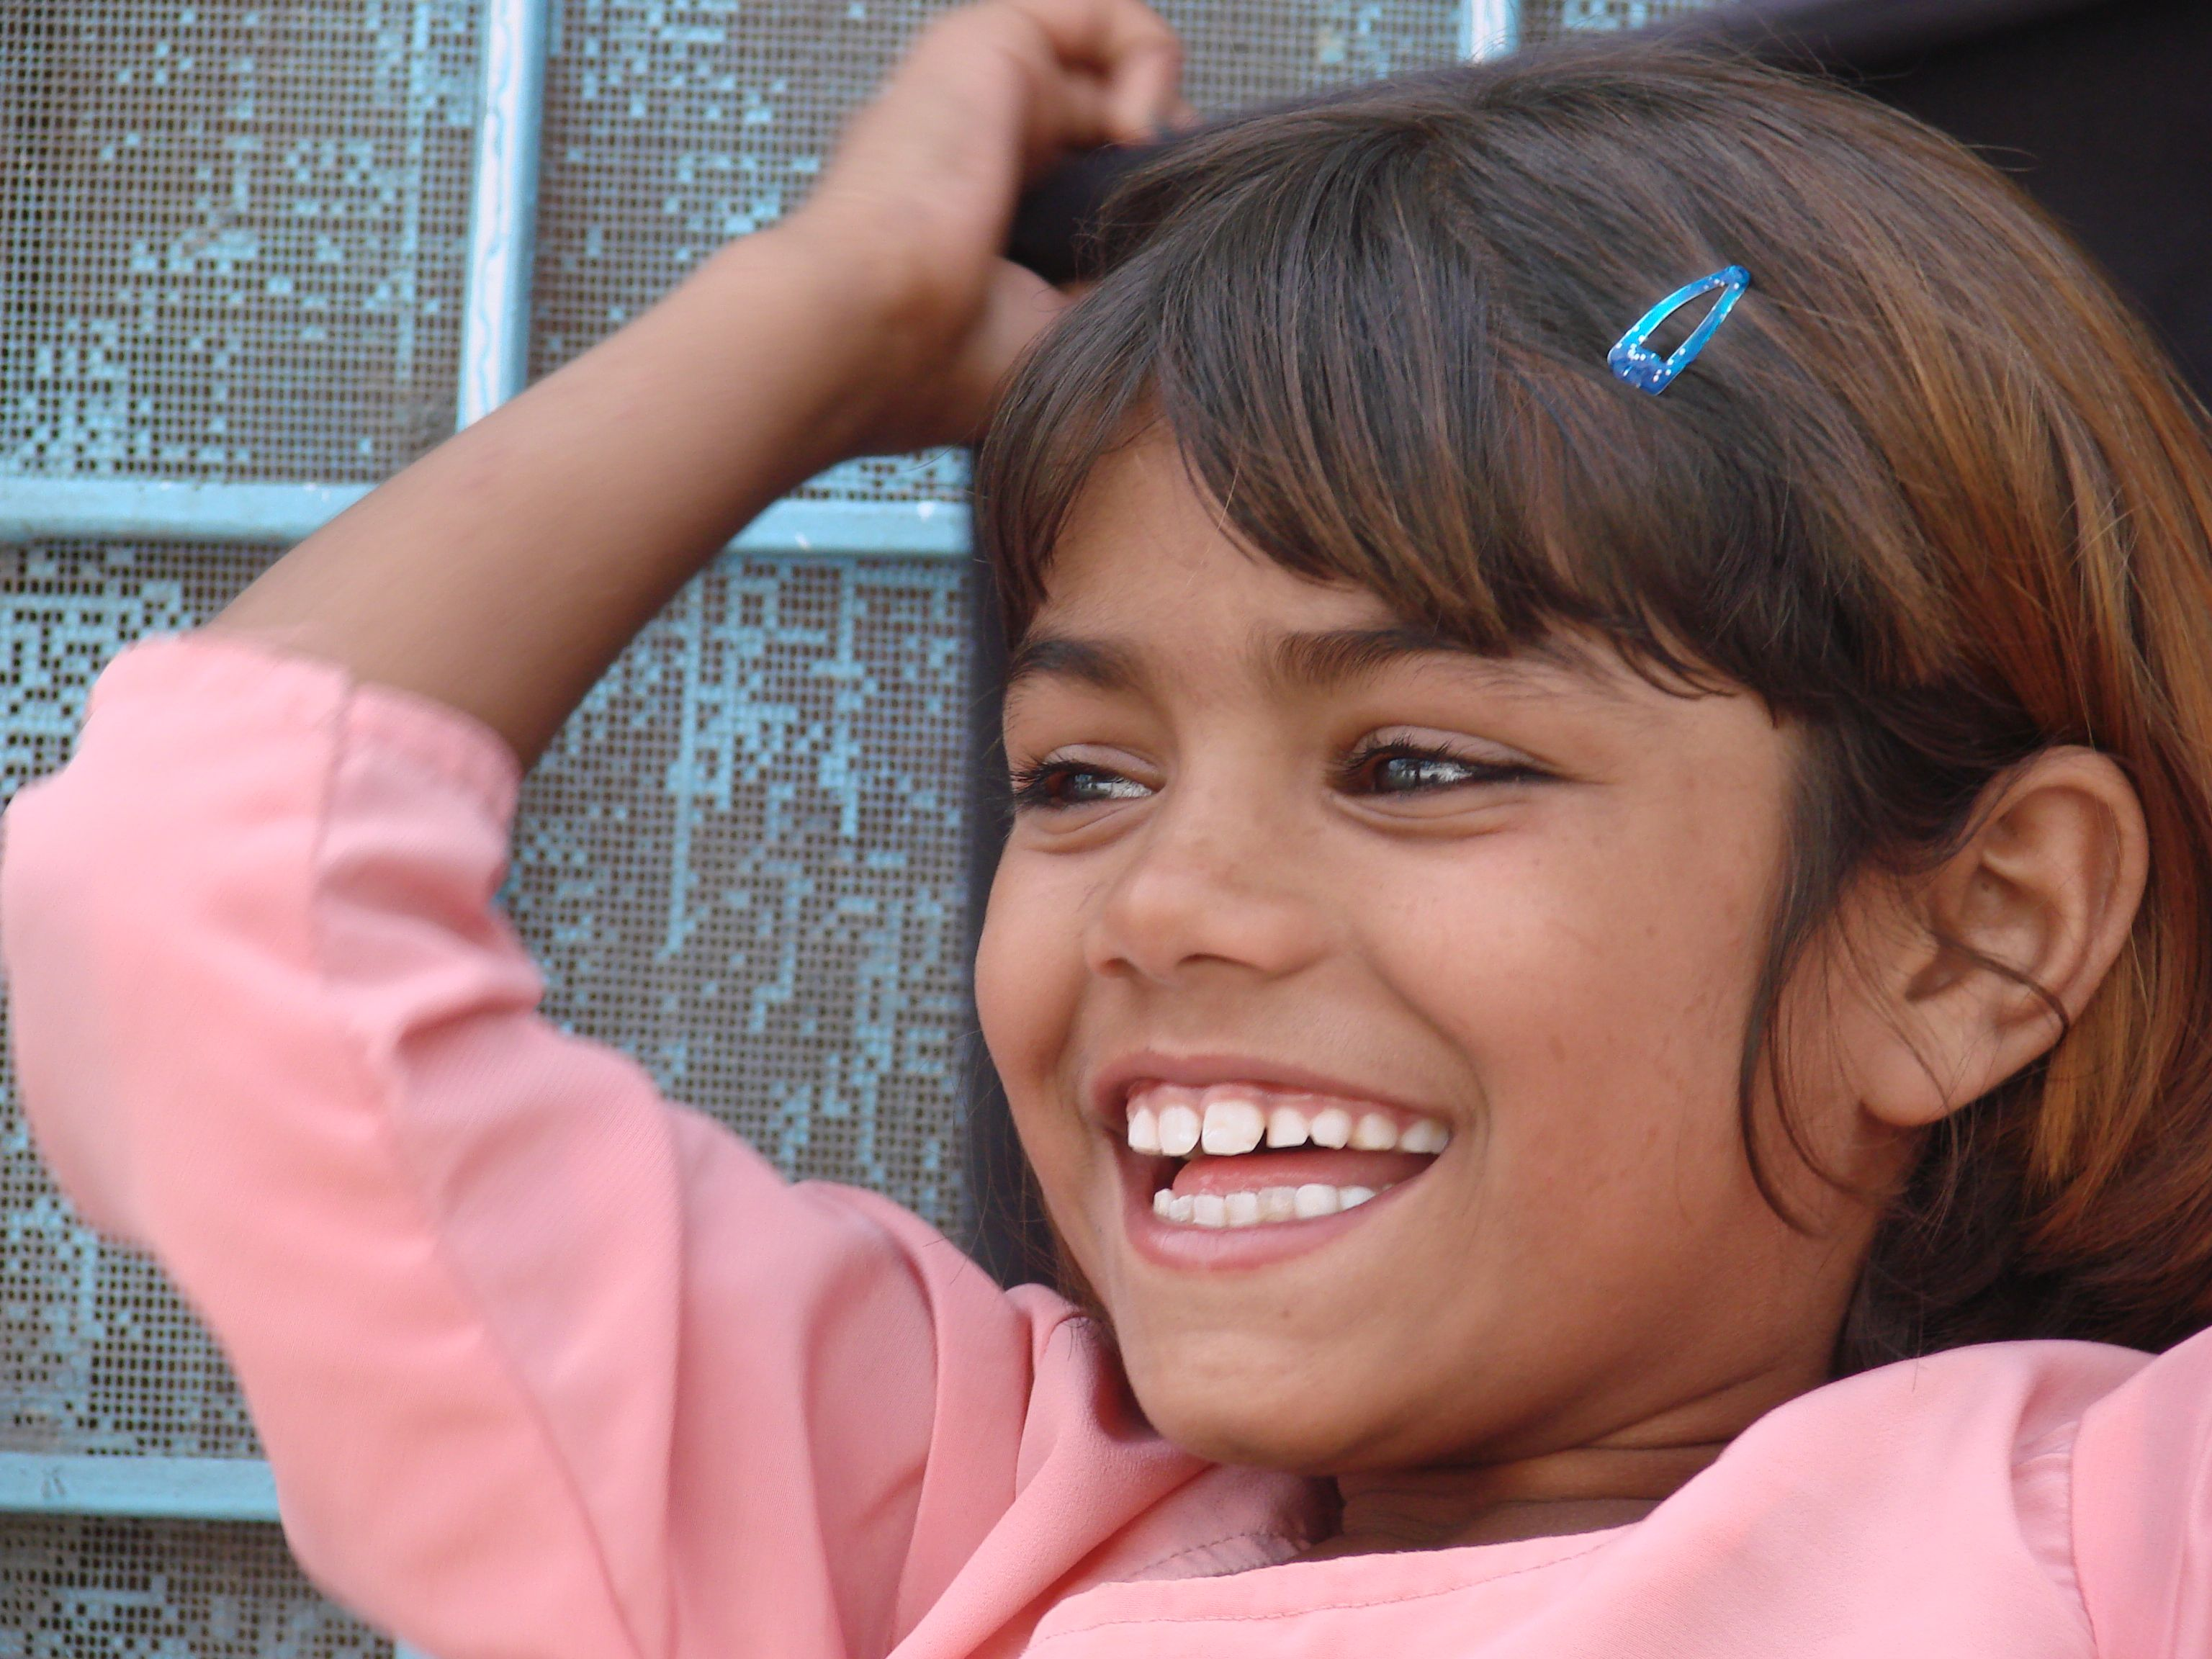 There are millions of Christian people in Pakistan. These are a few photos from my travel, while I was visiting there many times between 2007-2010